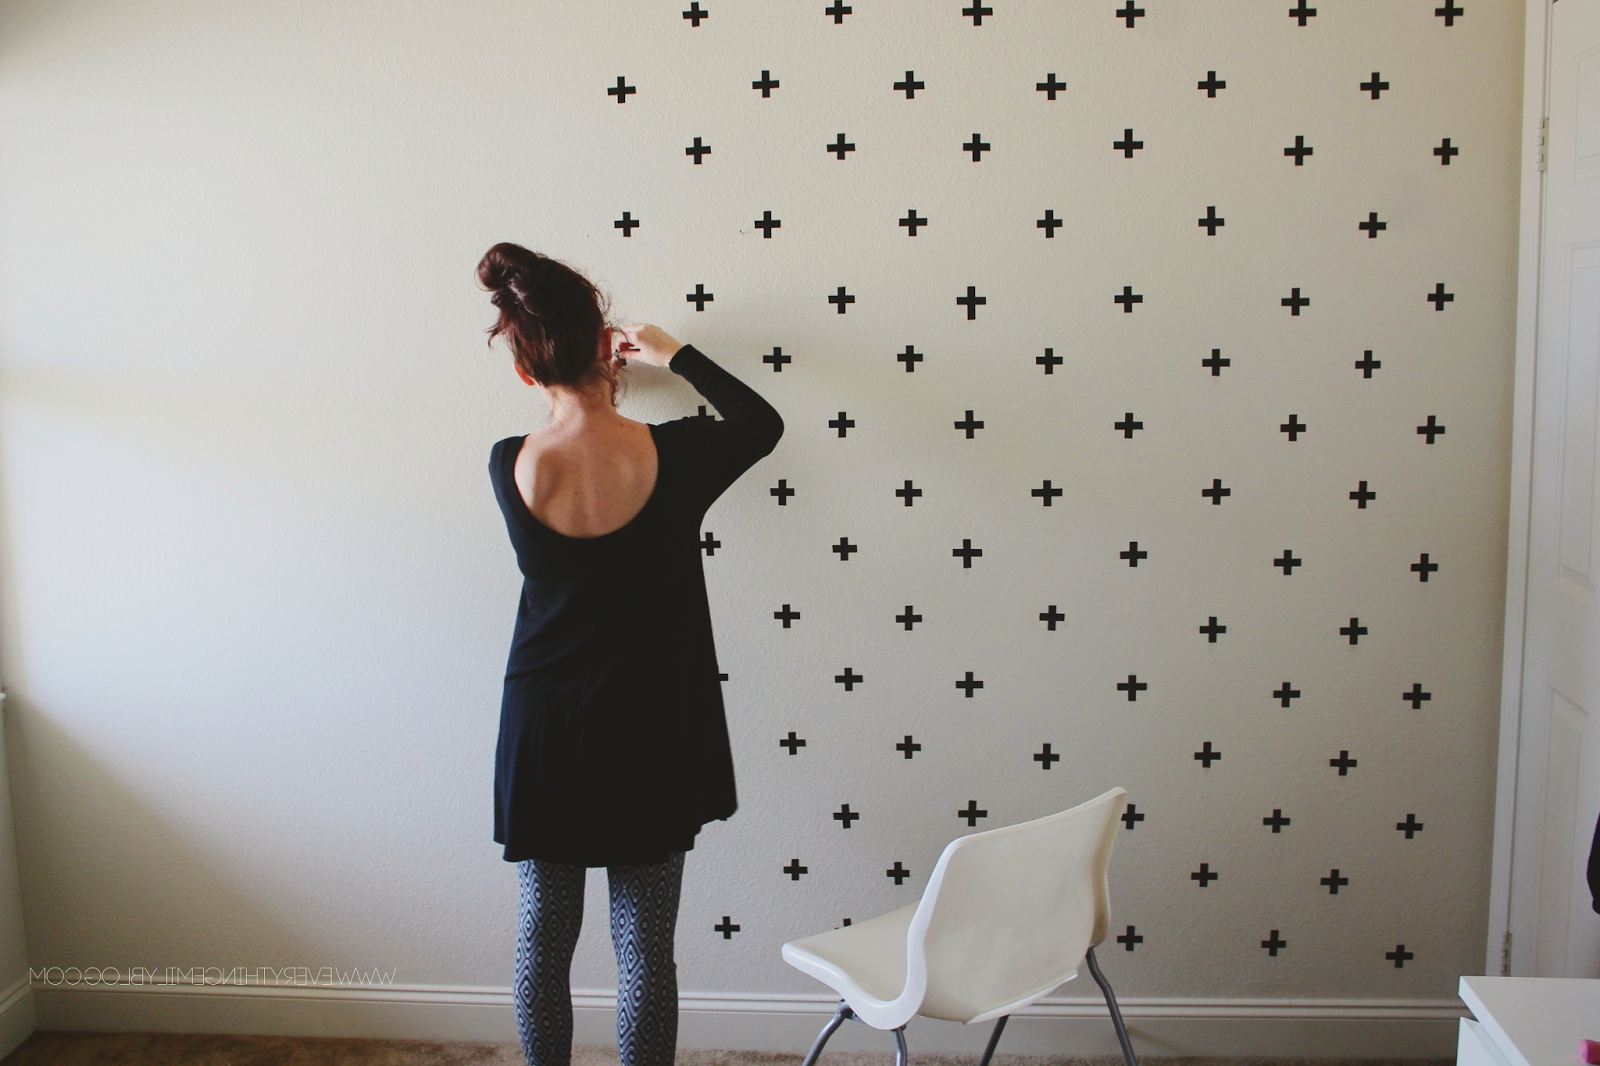 Washi Tape Wall Art Within Well Liked Dorm Room Decor 101: Washi Tape Wall Art – Blinds (View 15 of 15)